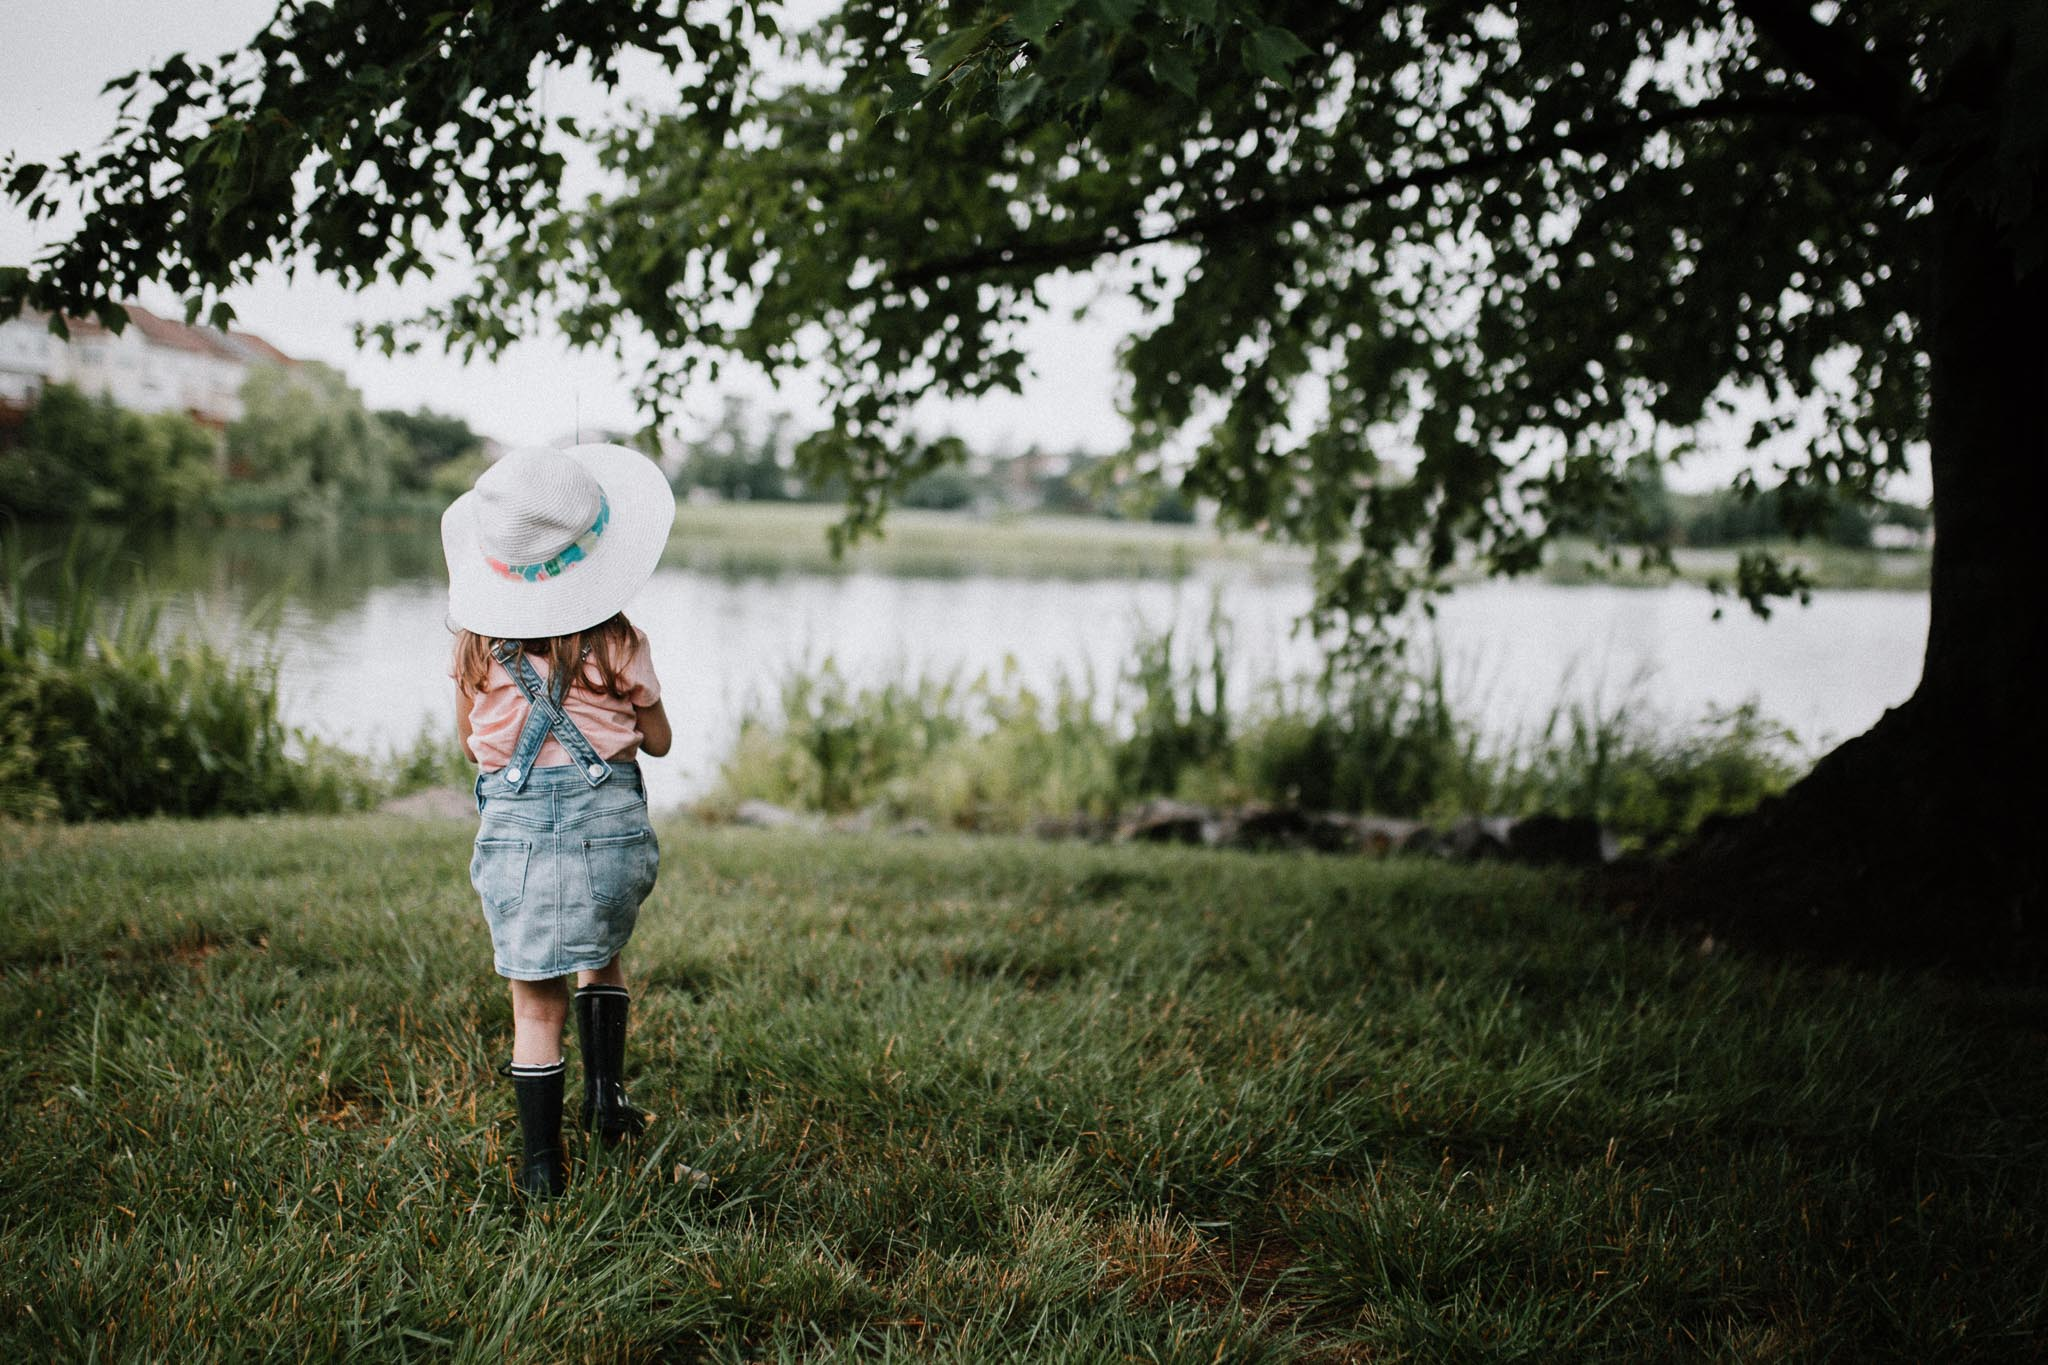 Girl in overalls and a white hat walks towards a lake, preparing to fish